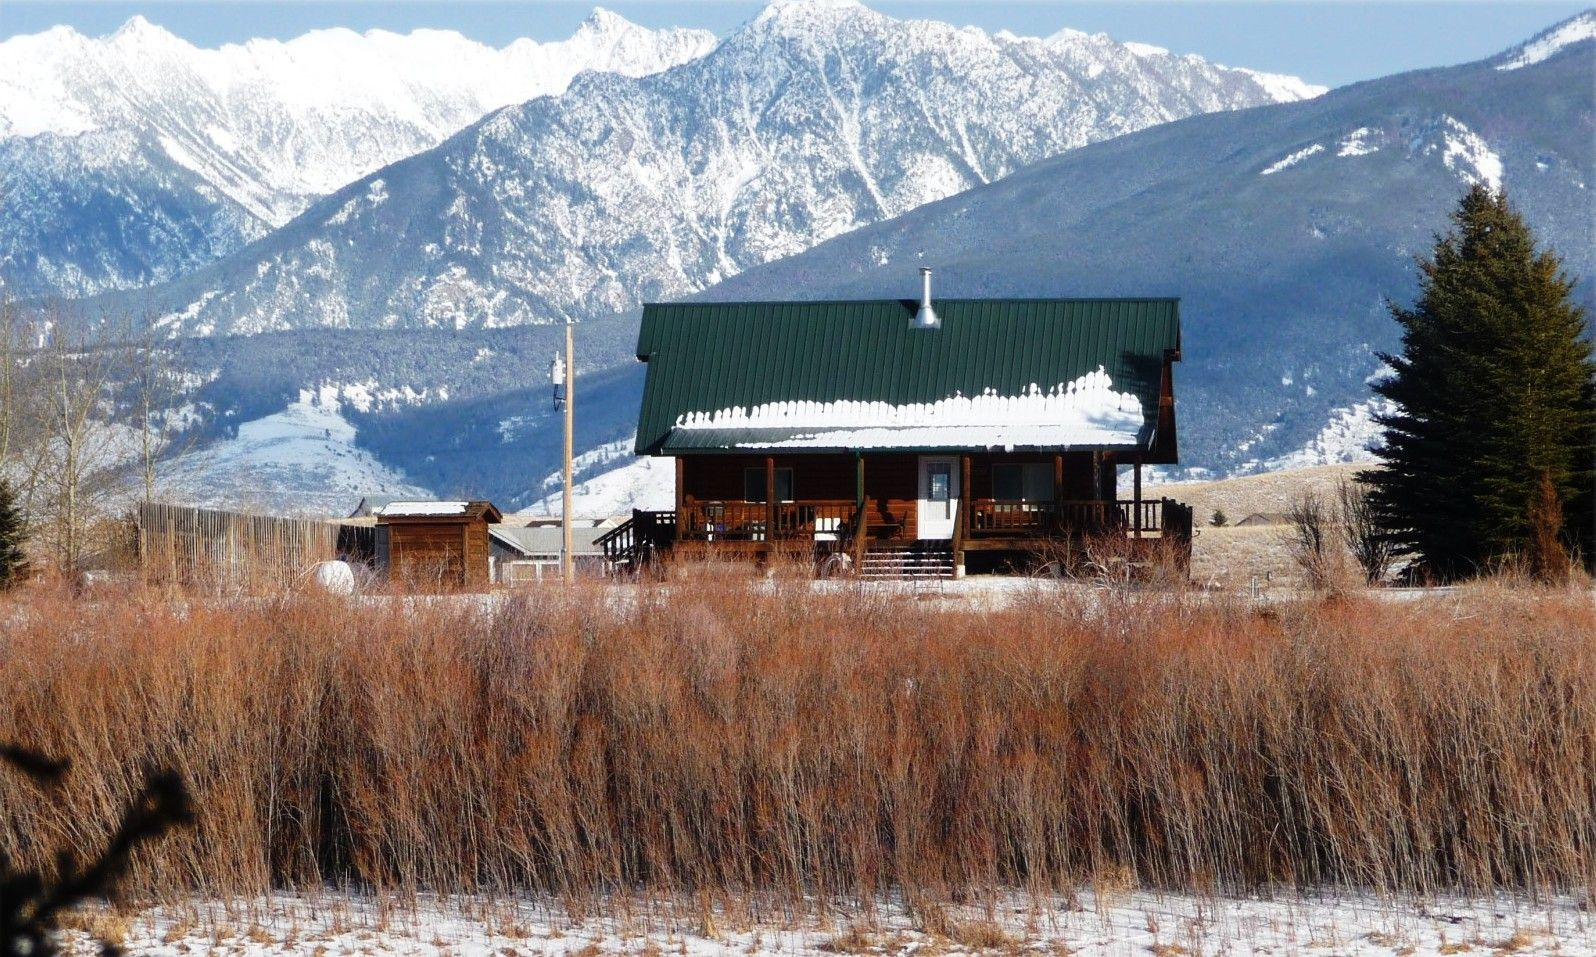 Amazing Views Of The Snowy Absaroka Mountains From